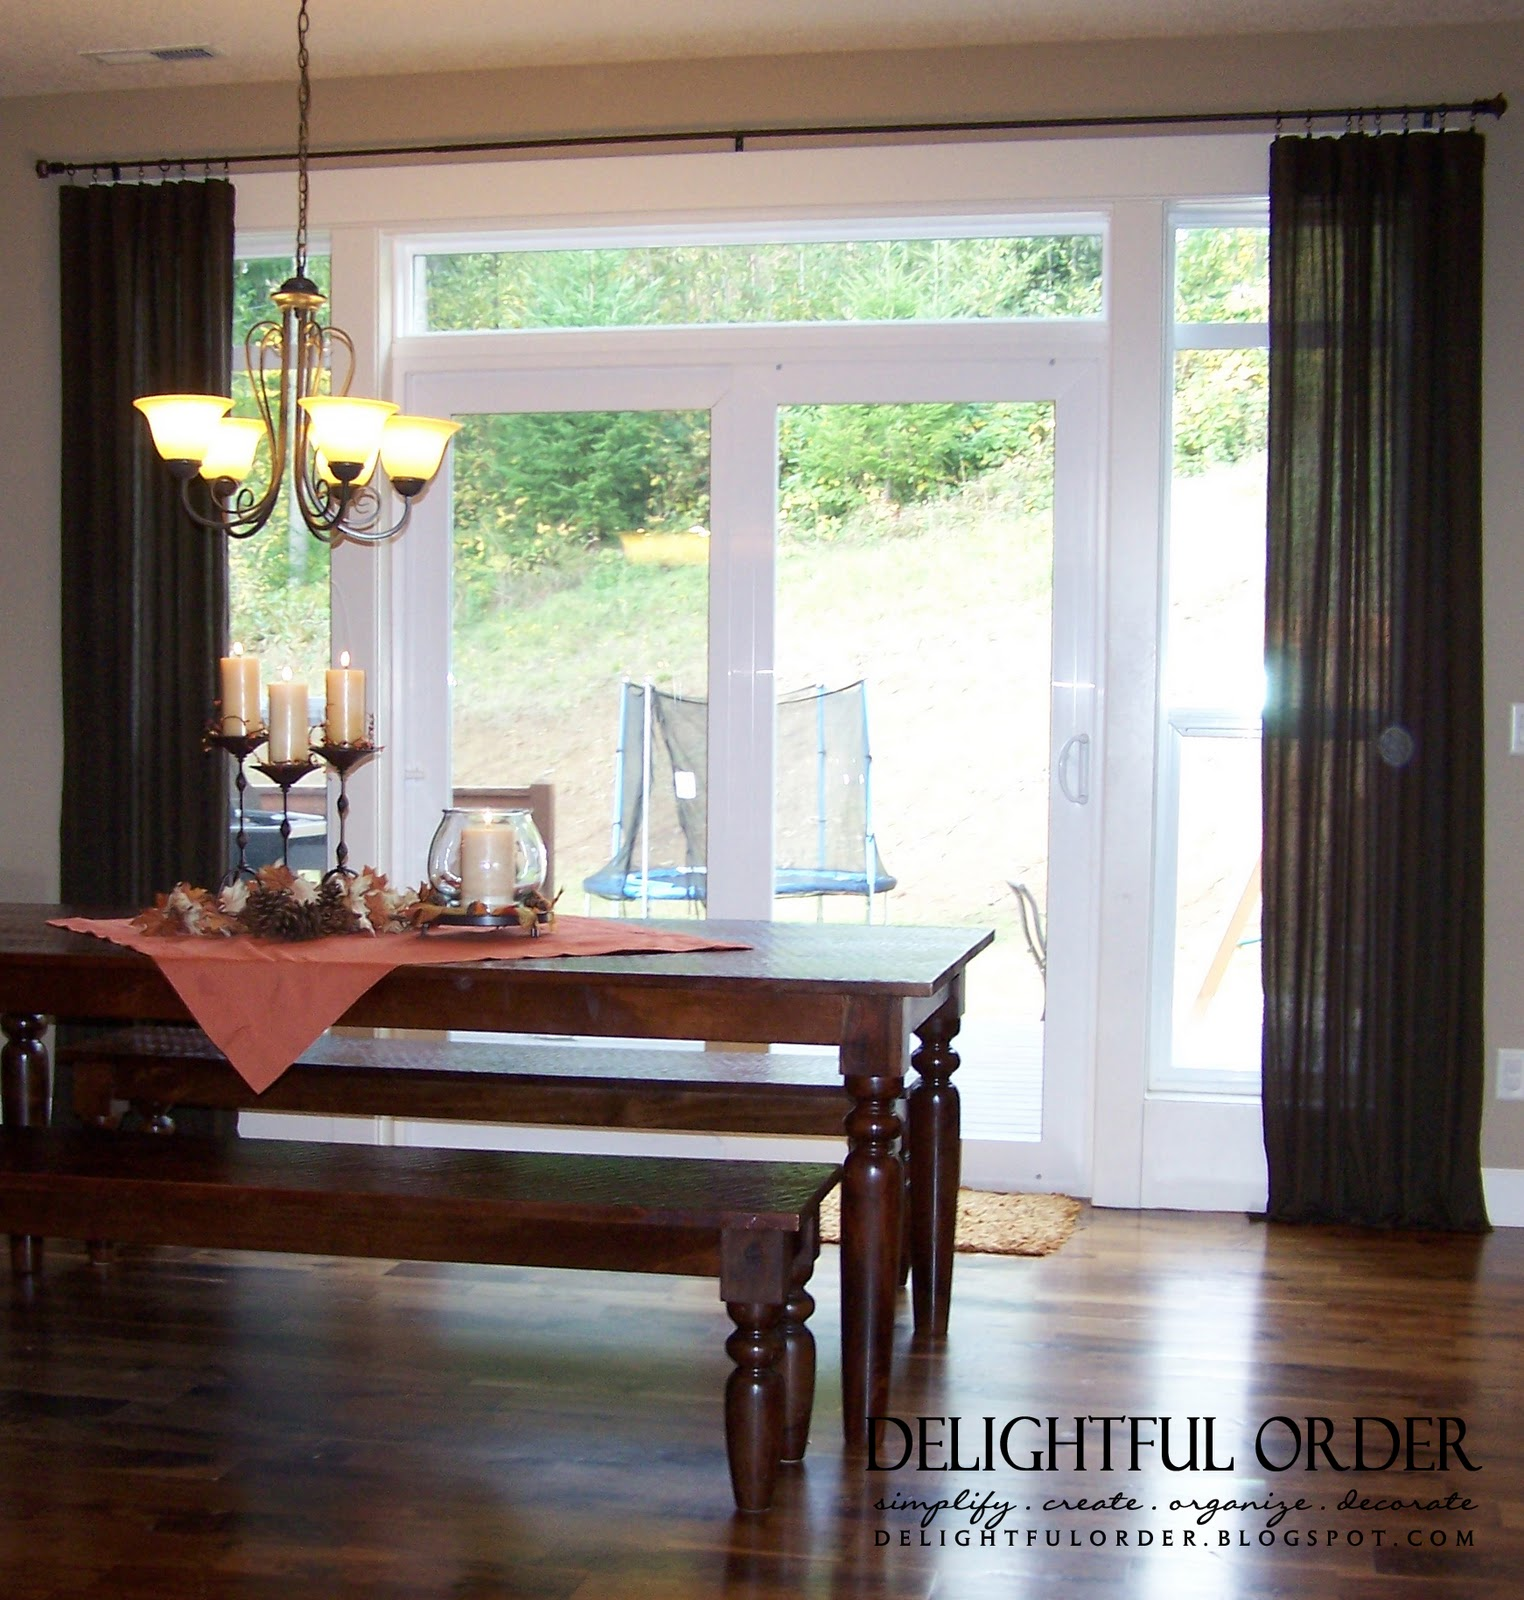 Home Makover: Delightful Order: Home Makeover -Part III- Kitchen/Dining Area